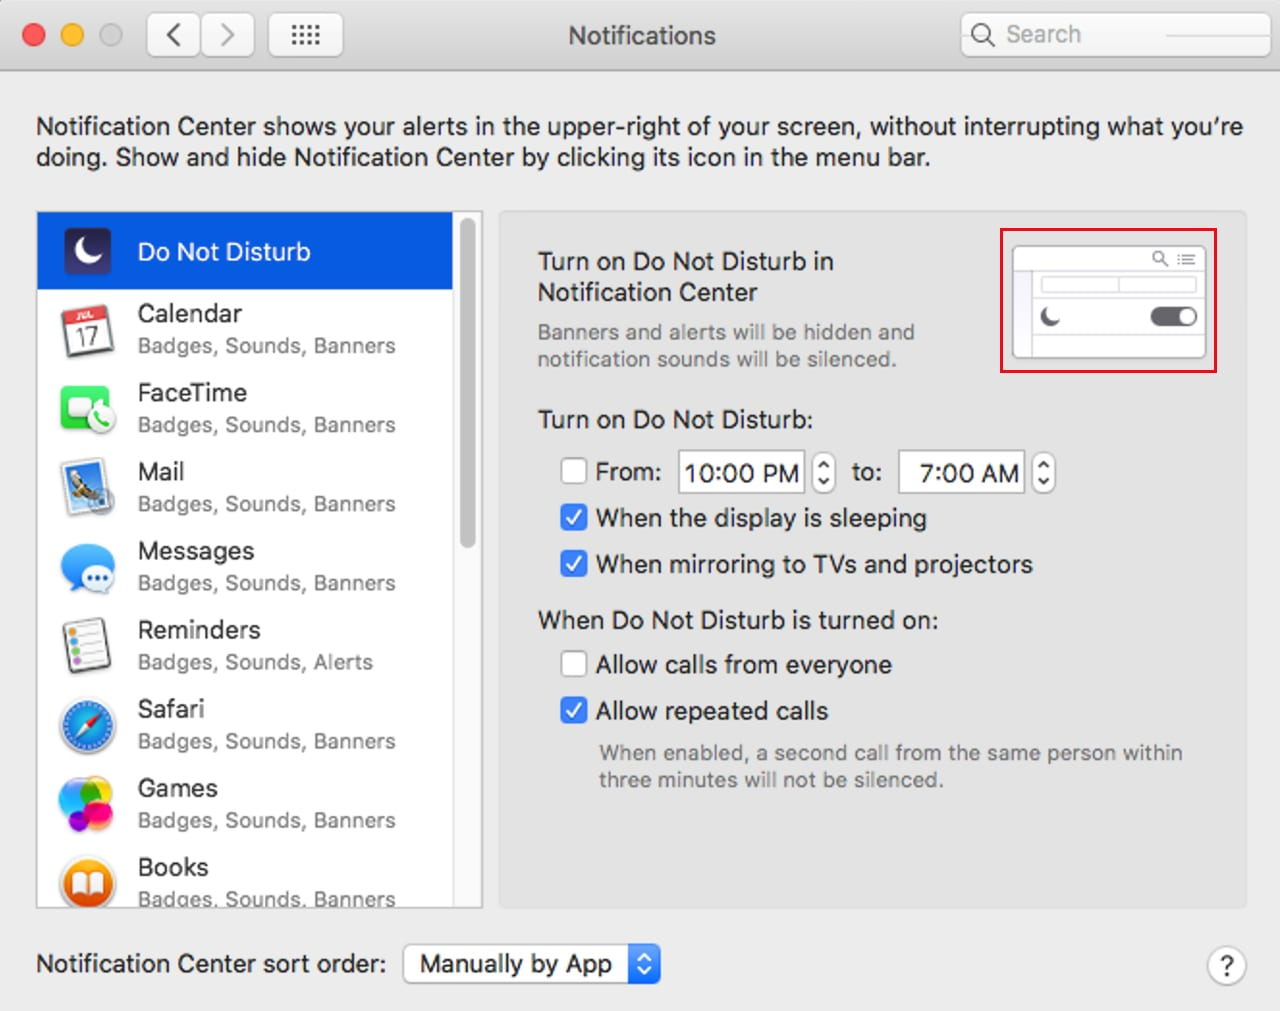 Customize Do Not Distrub settings of the Notification Center.